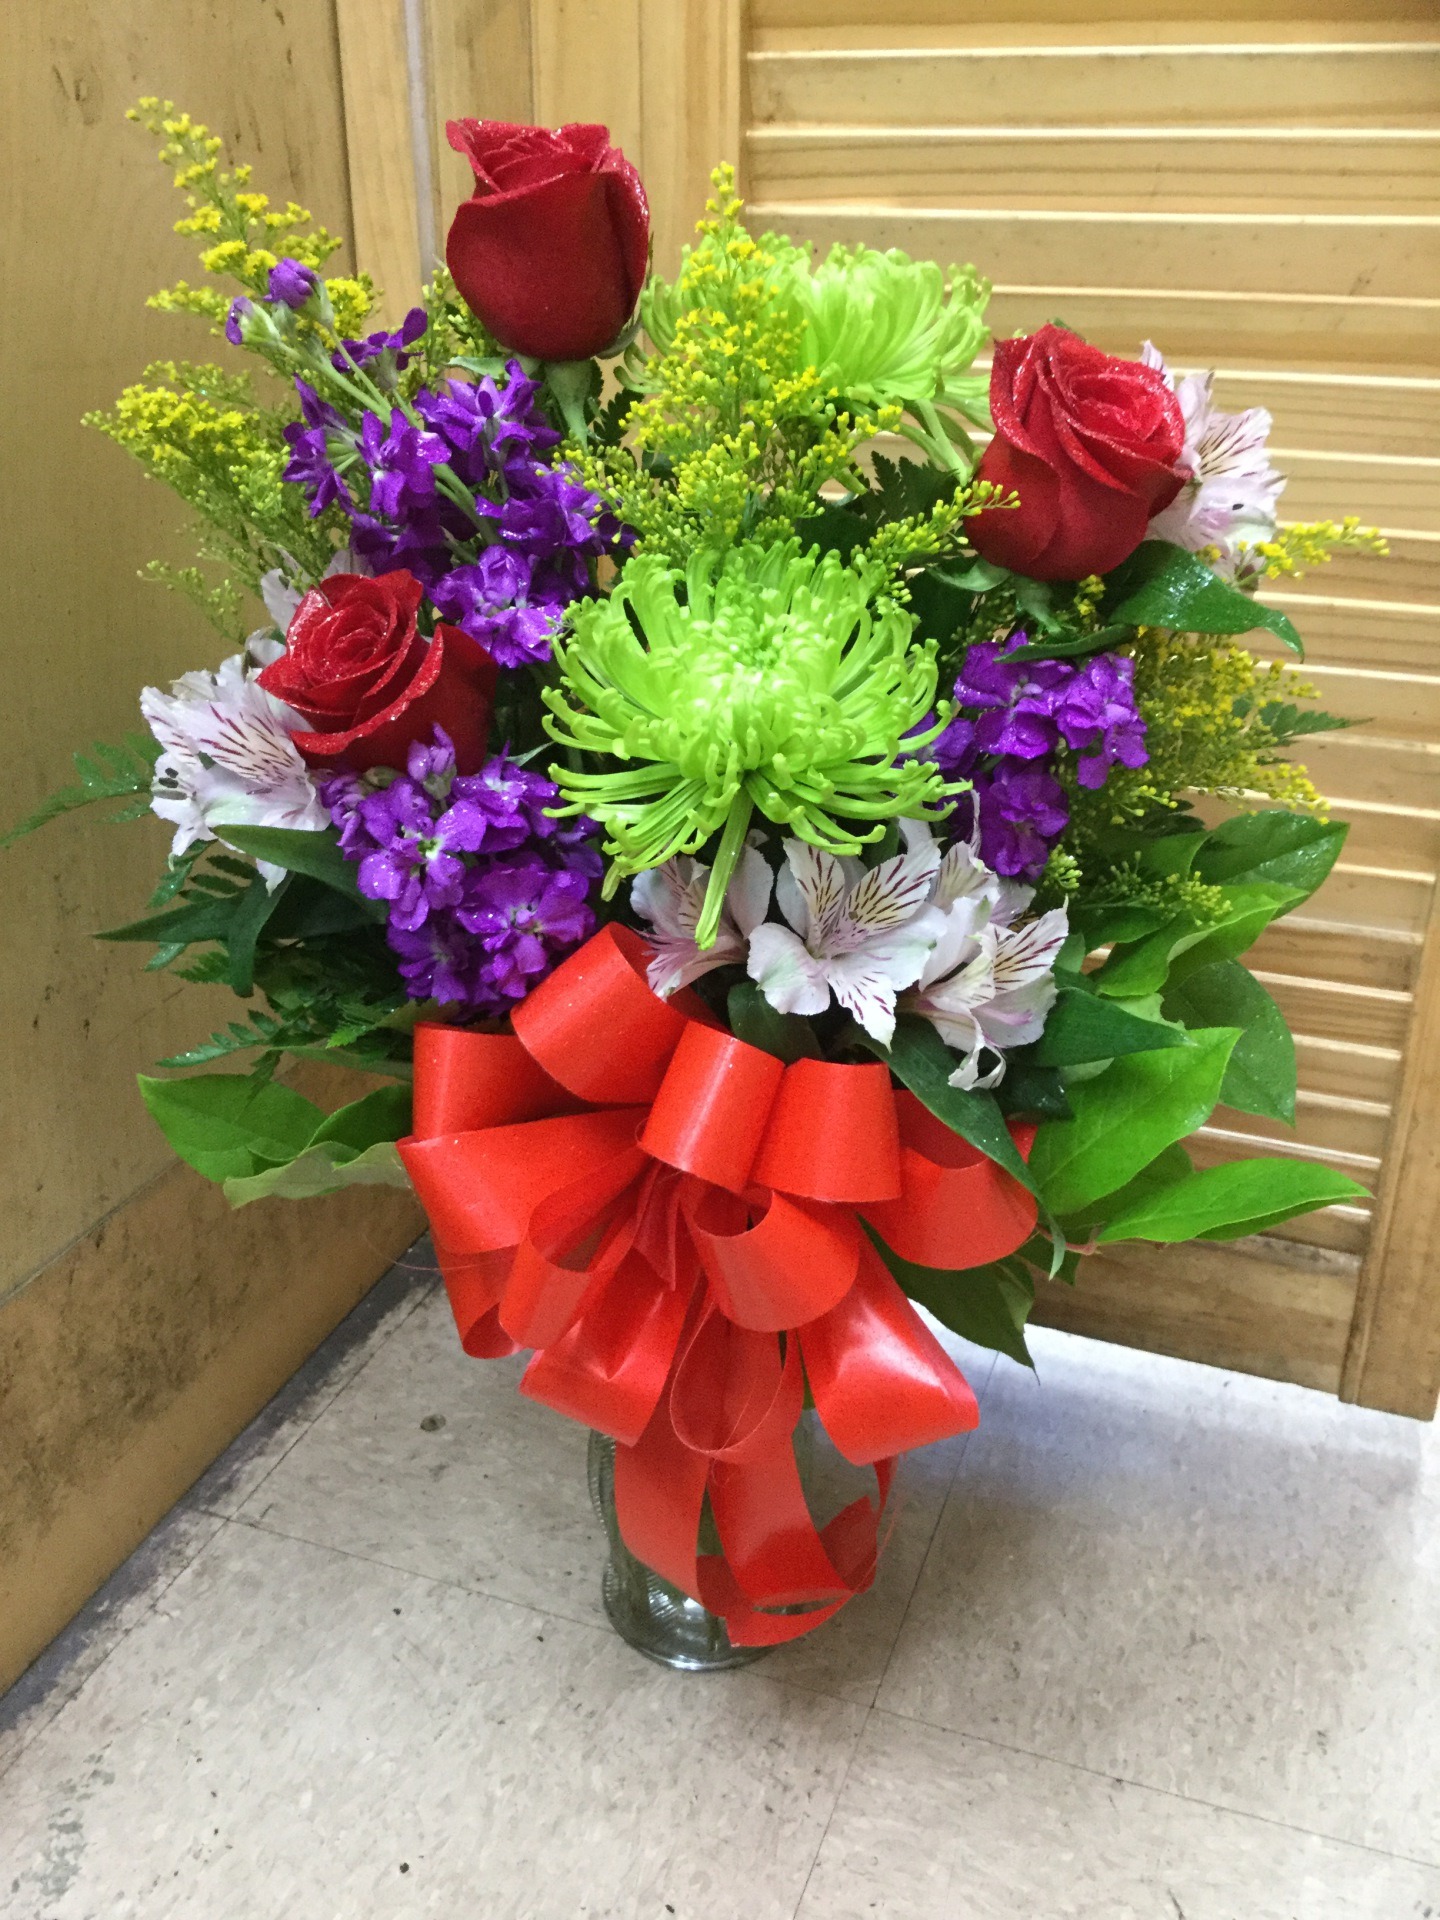 Mixed Flower Arrangement In Vase